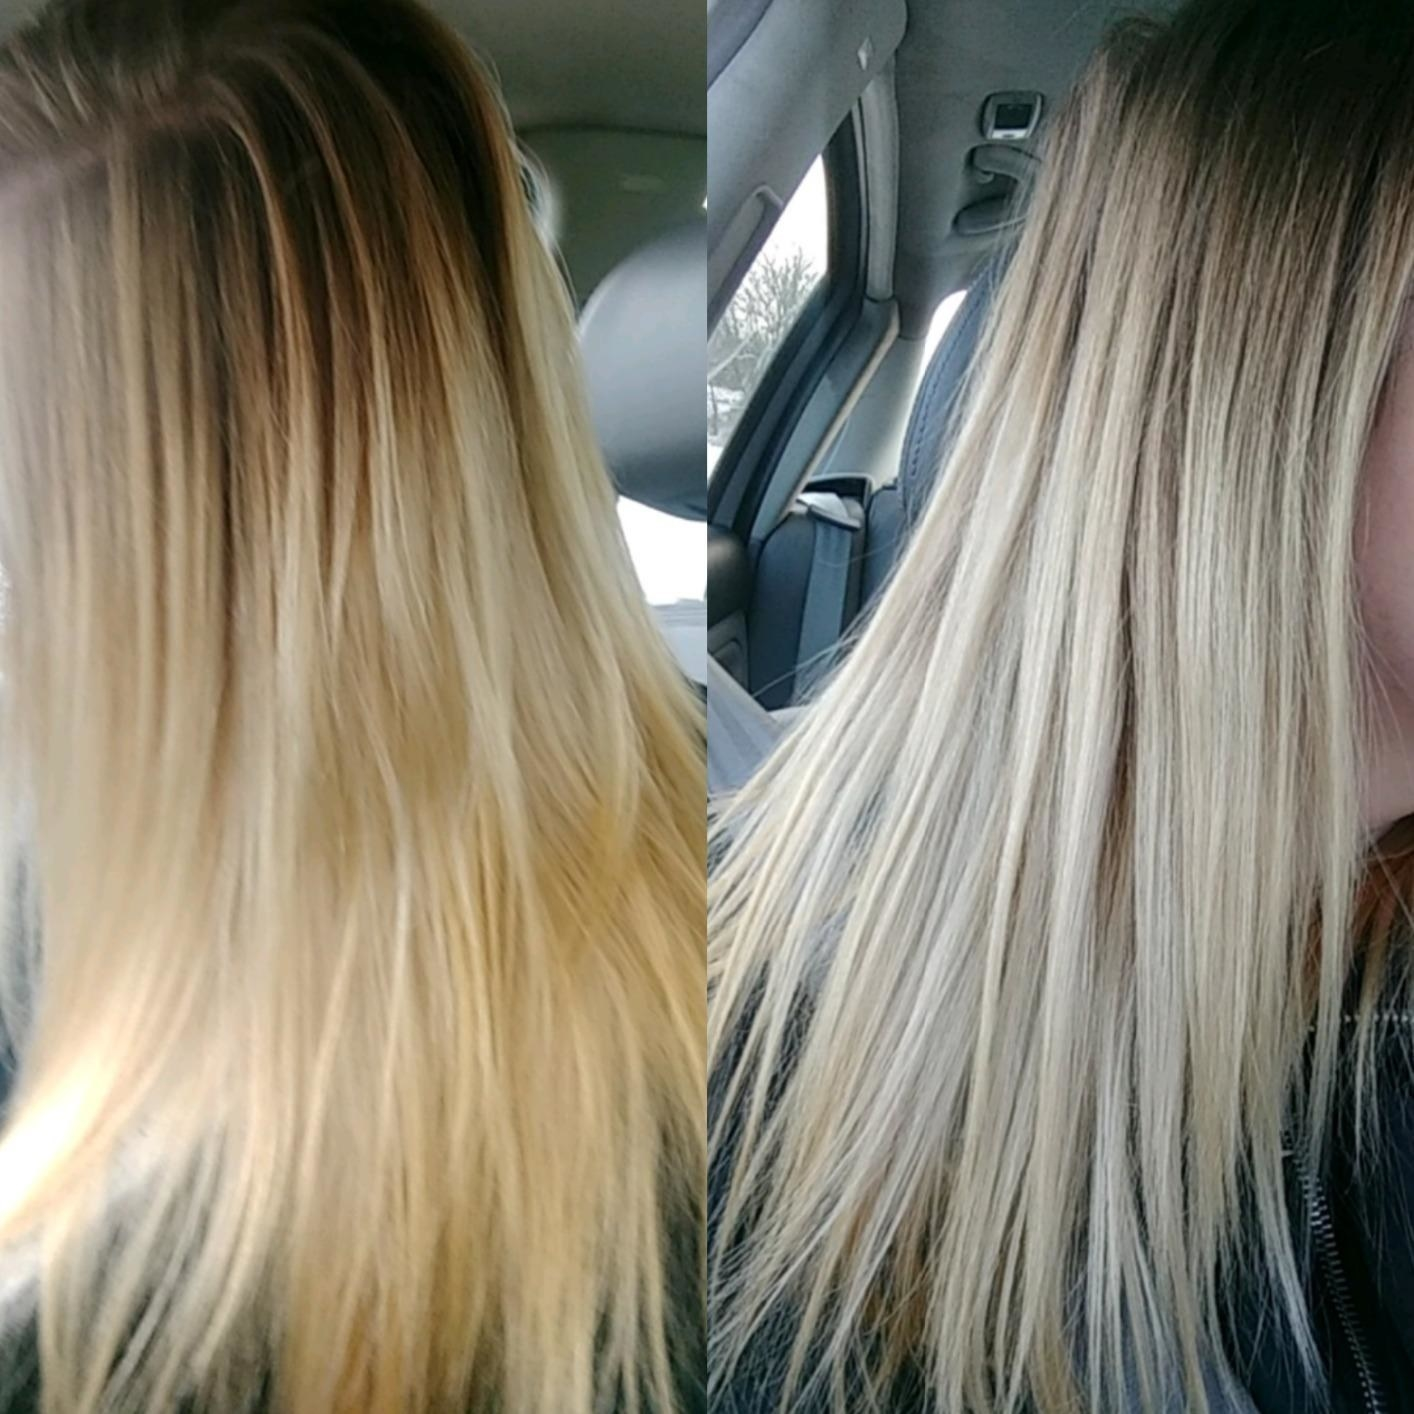 left: reviewer hair looking a bit orange right: hair looking more platinum blonde